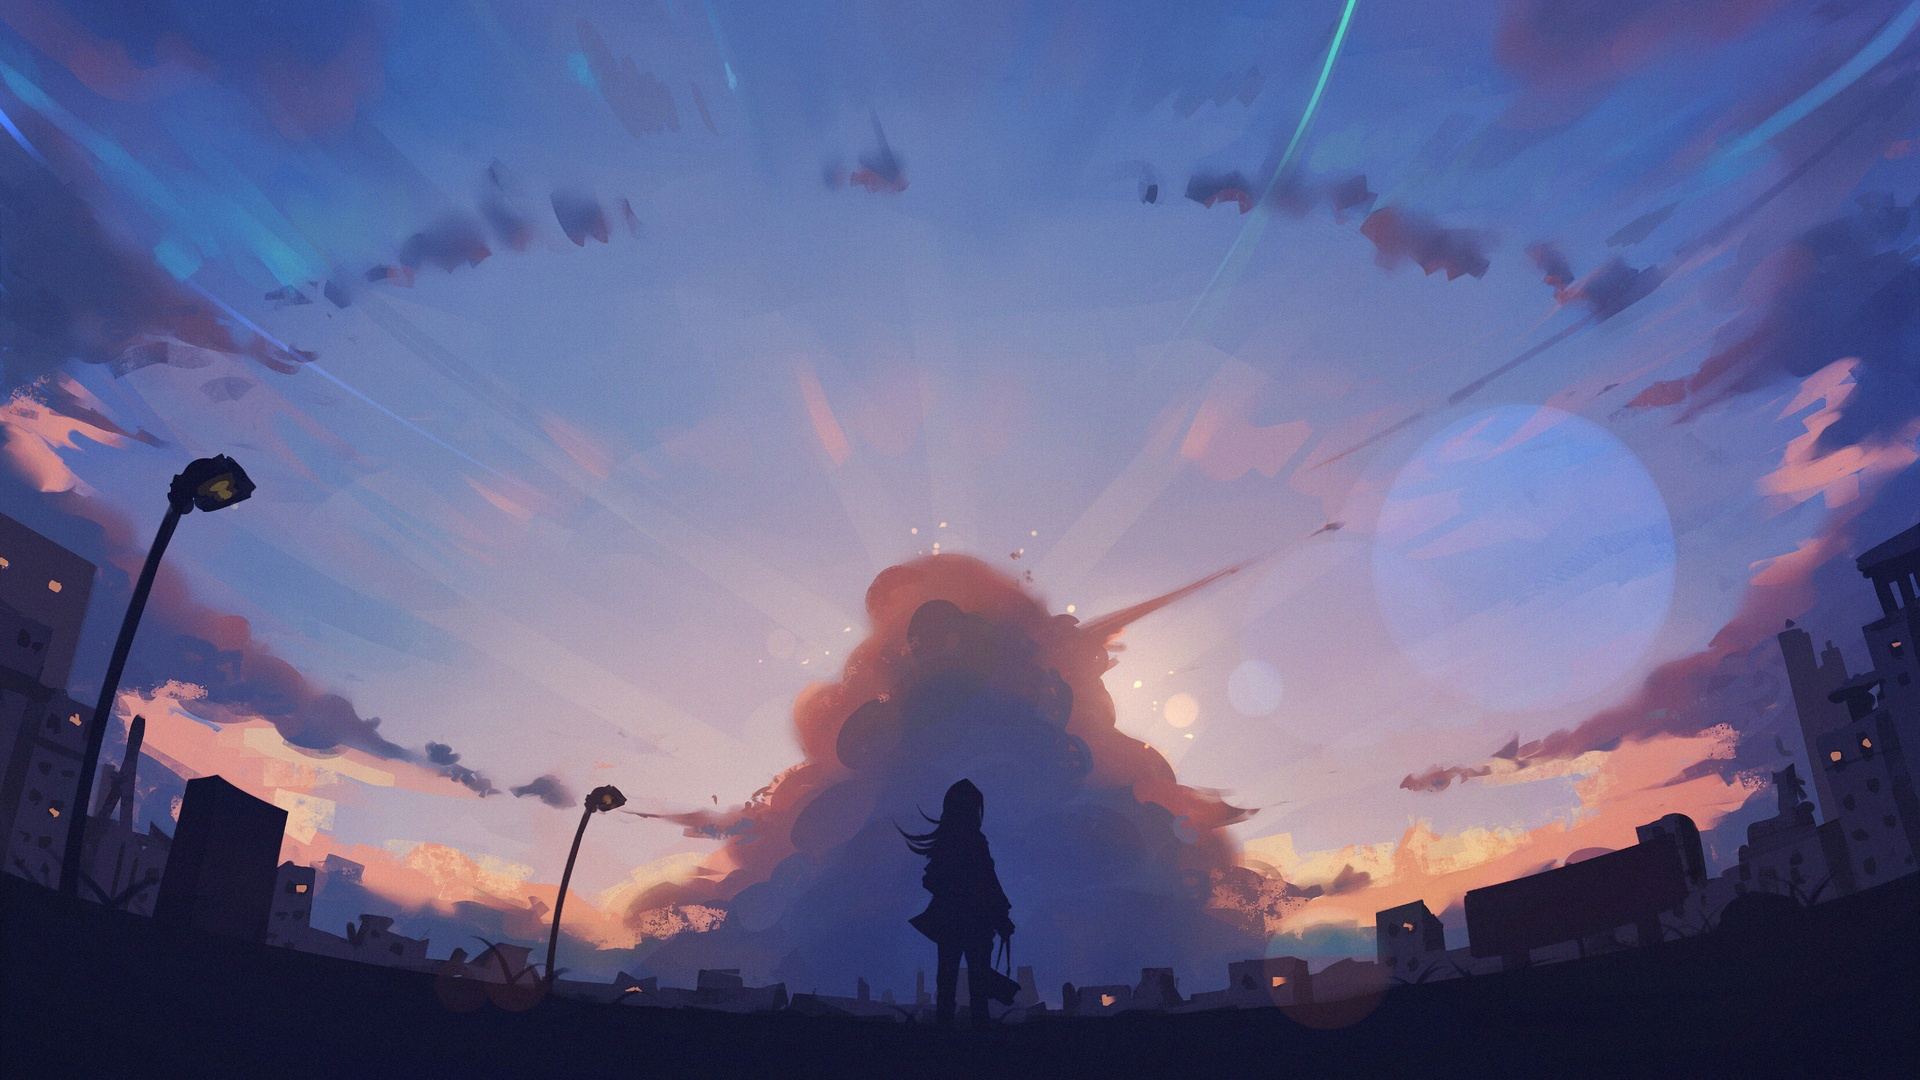 Anime Landscape With Clouds 1920x1080 wallpaper